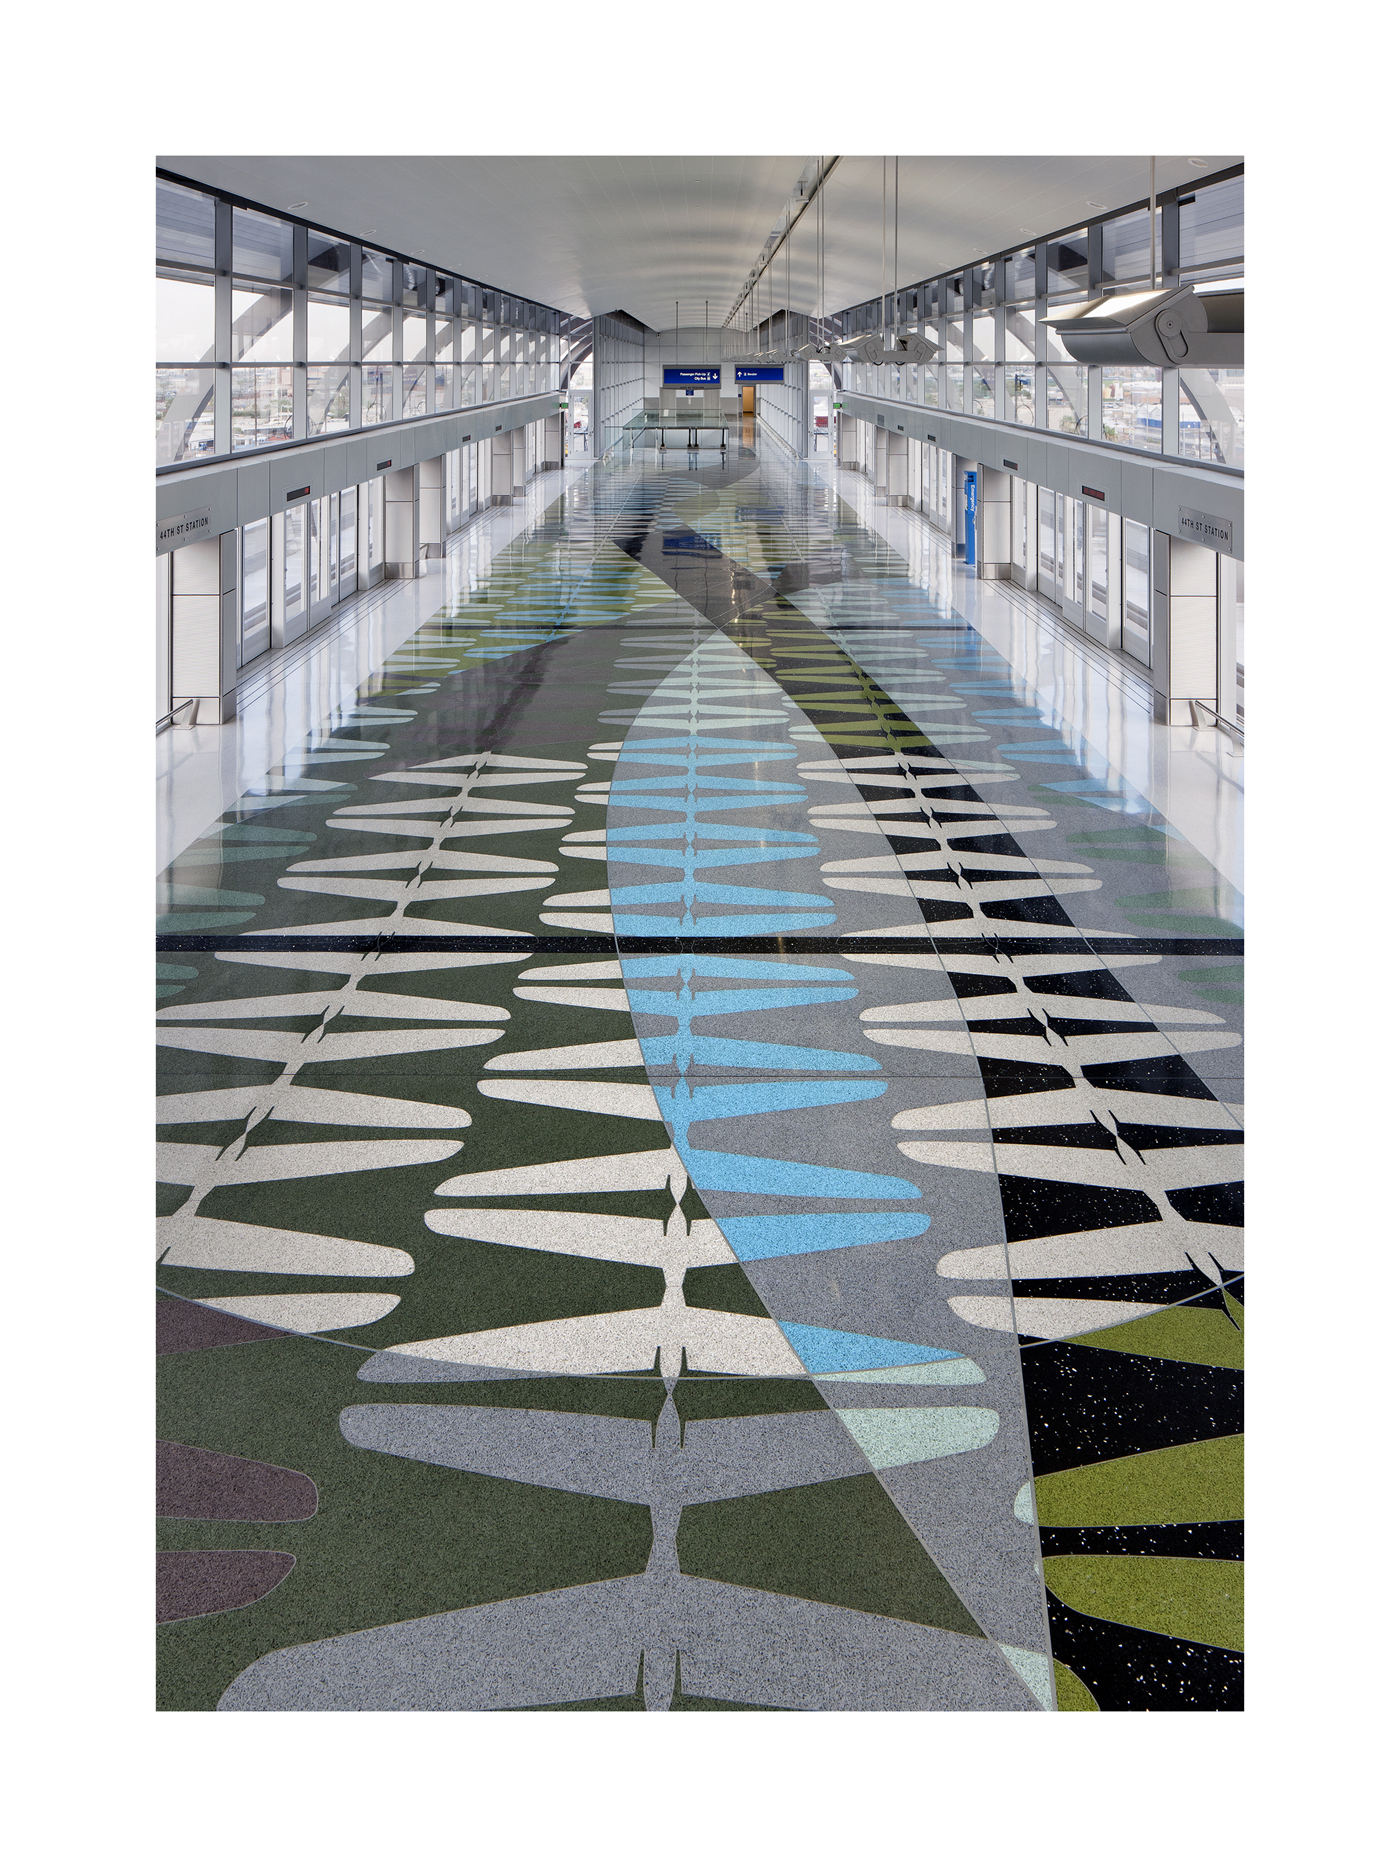 Phoenix Sky Train Station Terrazzo Floor   Tailplane Patterns  Phoenix Office of Arts and Culture  2013  Photo Credit: Bill Timmerman